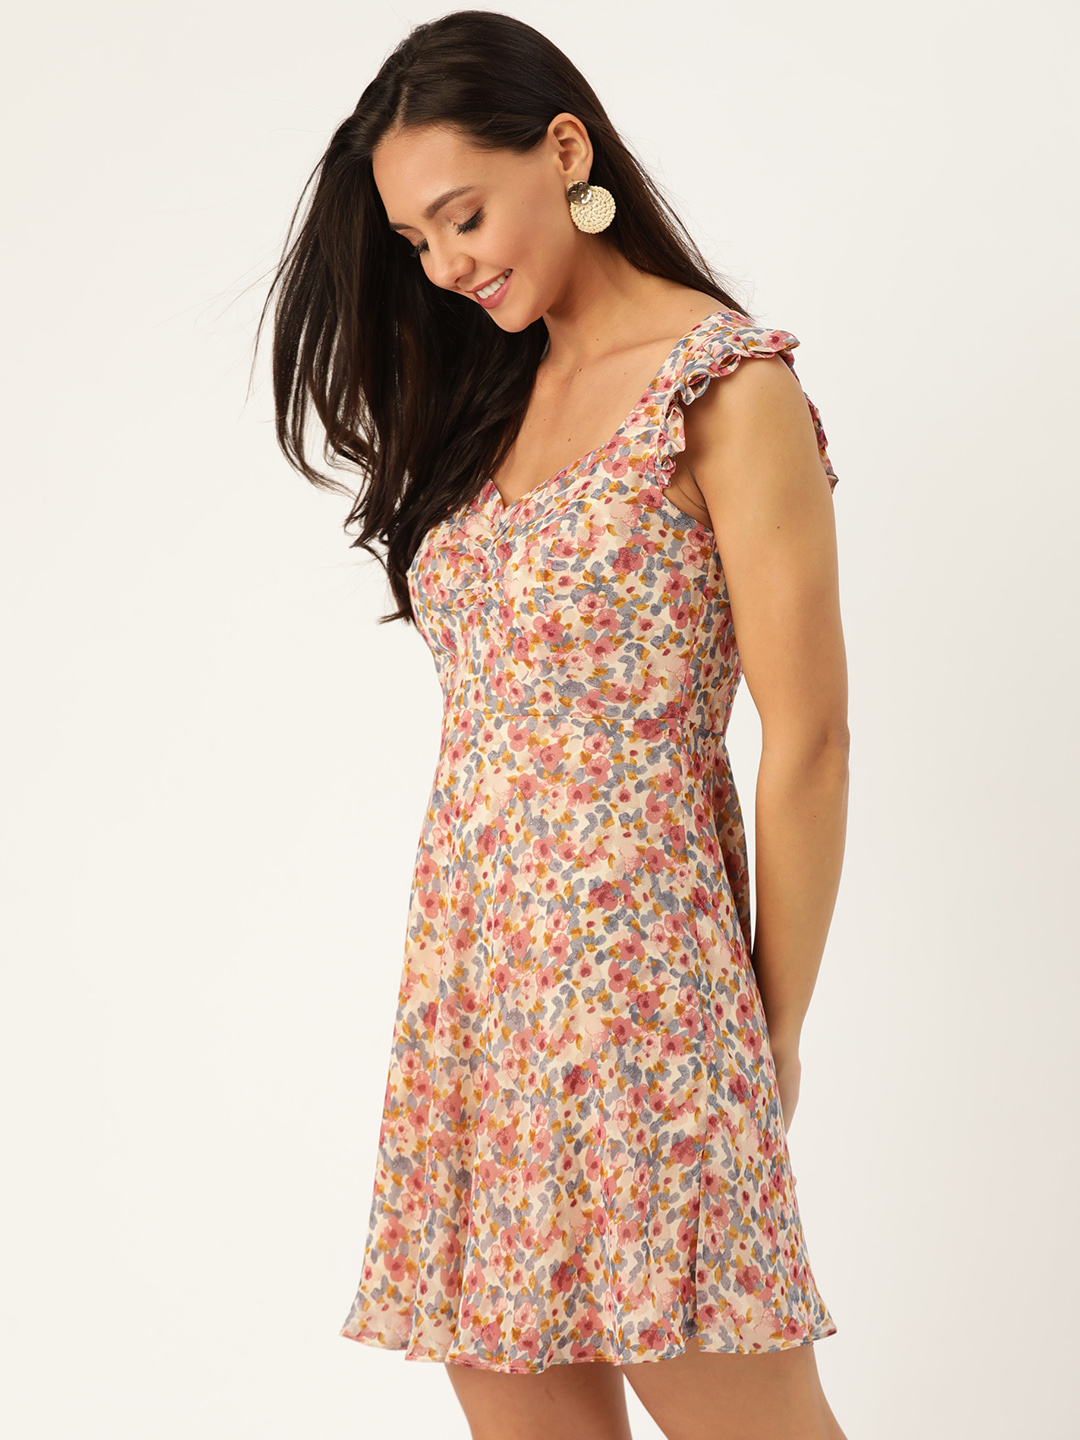 Dresses-Dressed To Frill Floral Dress4